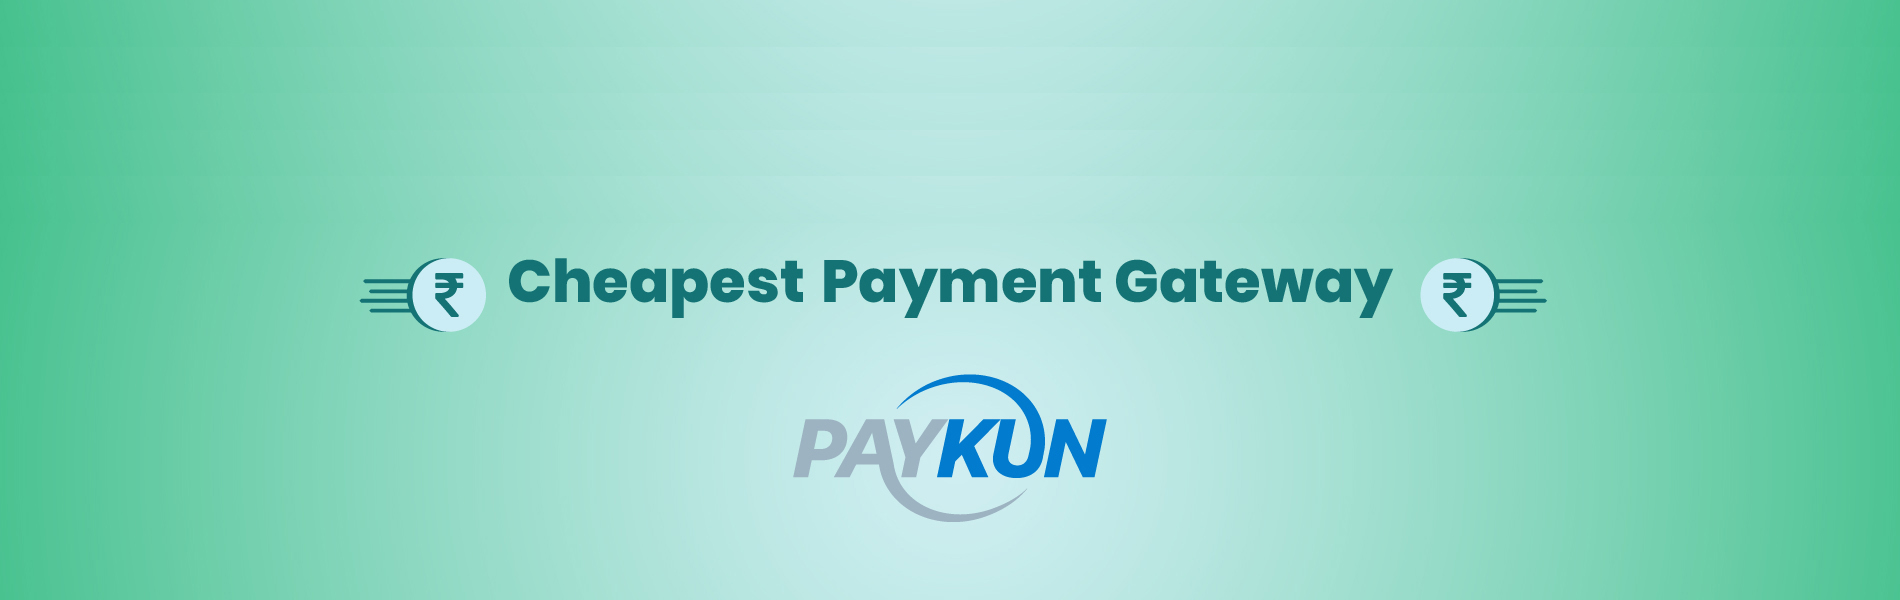 Cheapest Online Payment Gateway for Startup Business – PayKun